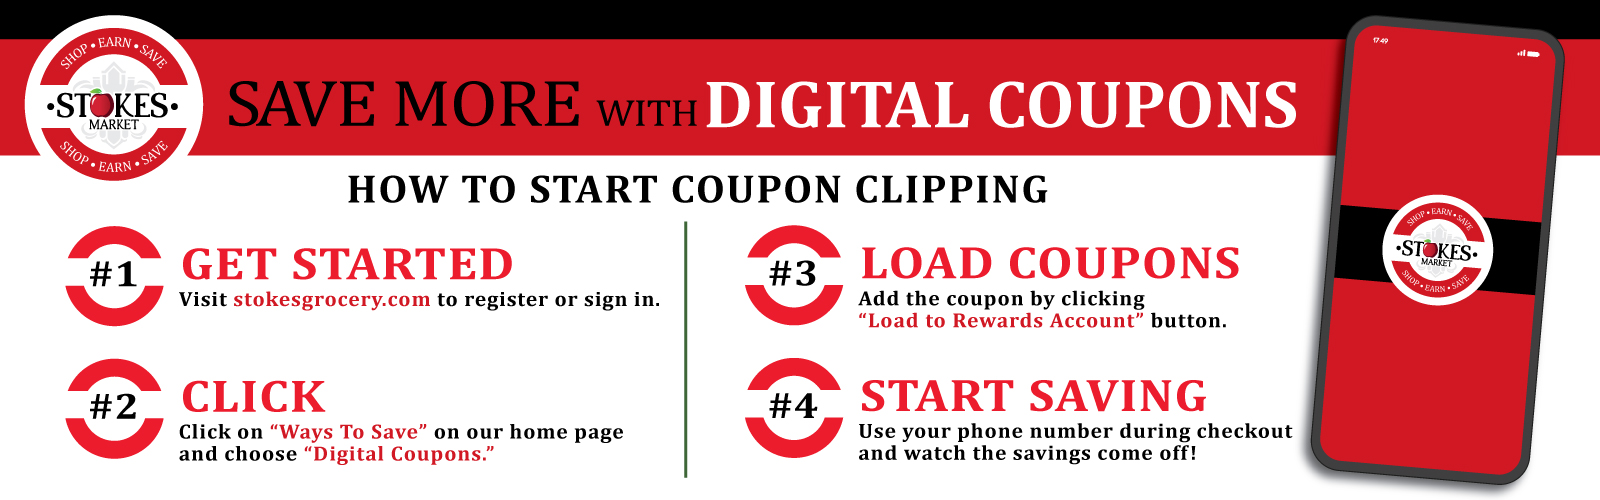 Stokes Digital Coupons